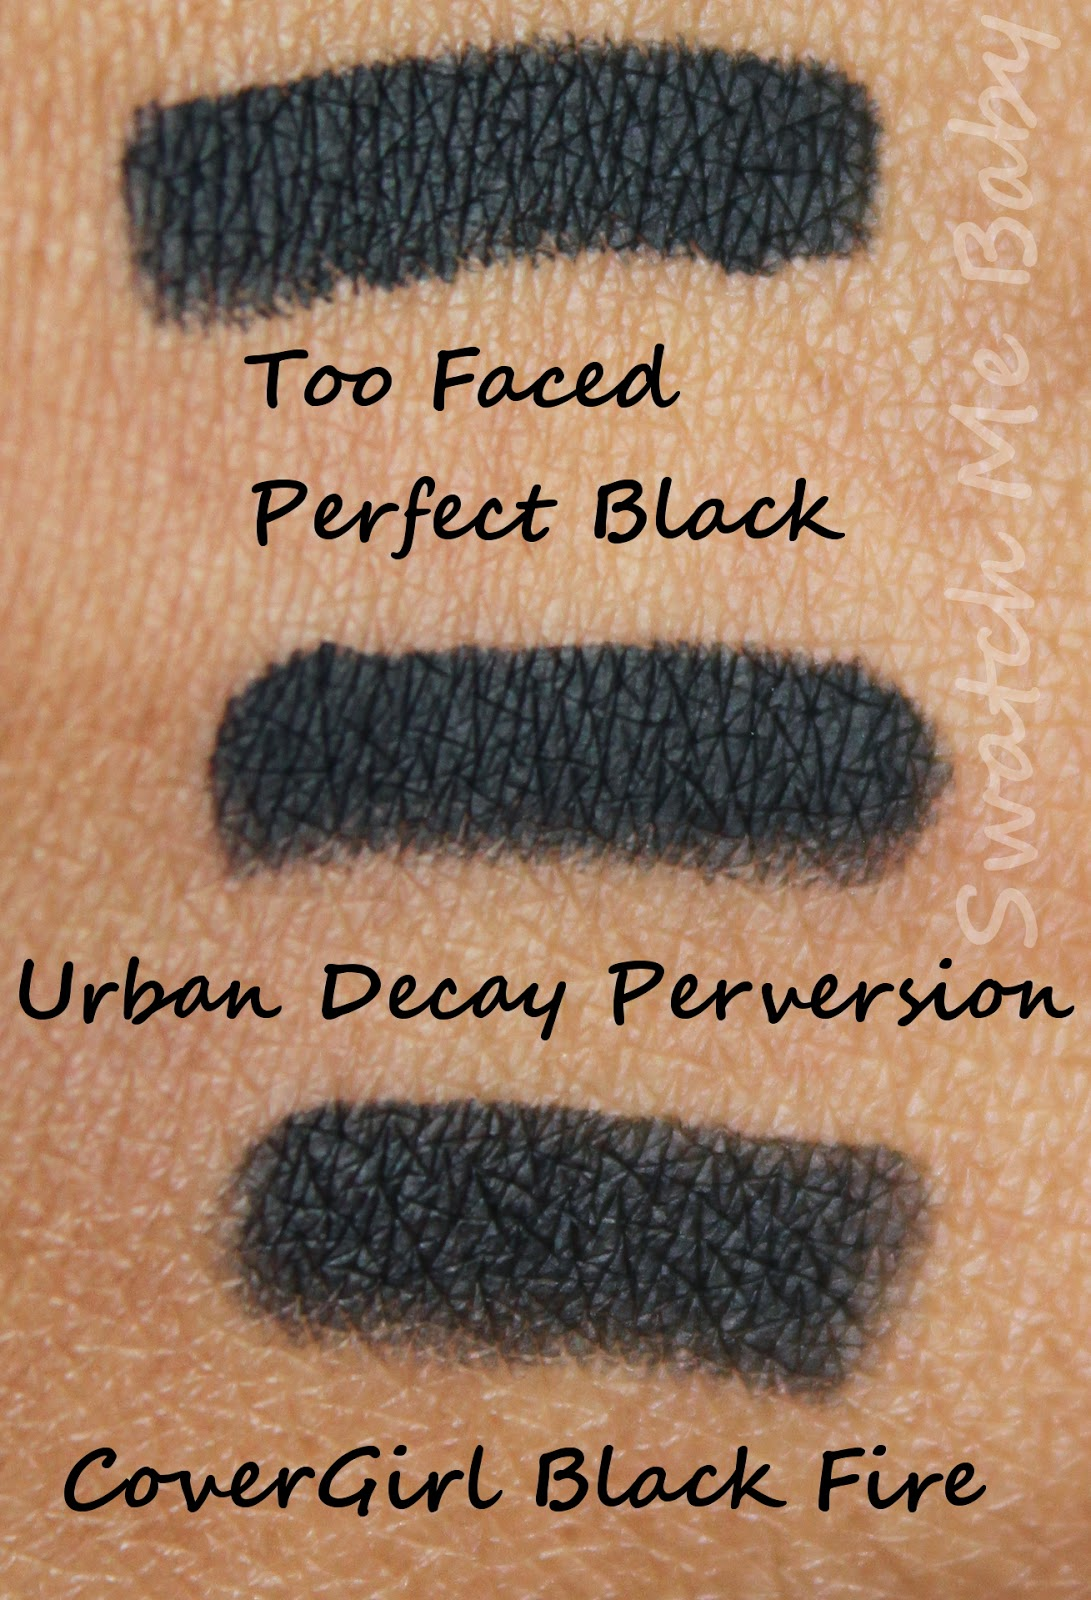 too faced perfect black eyeliner swatch dark skin